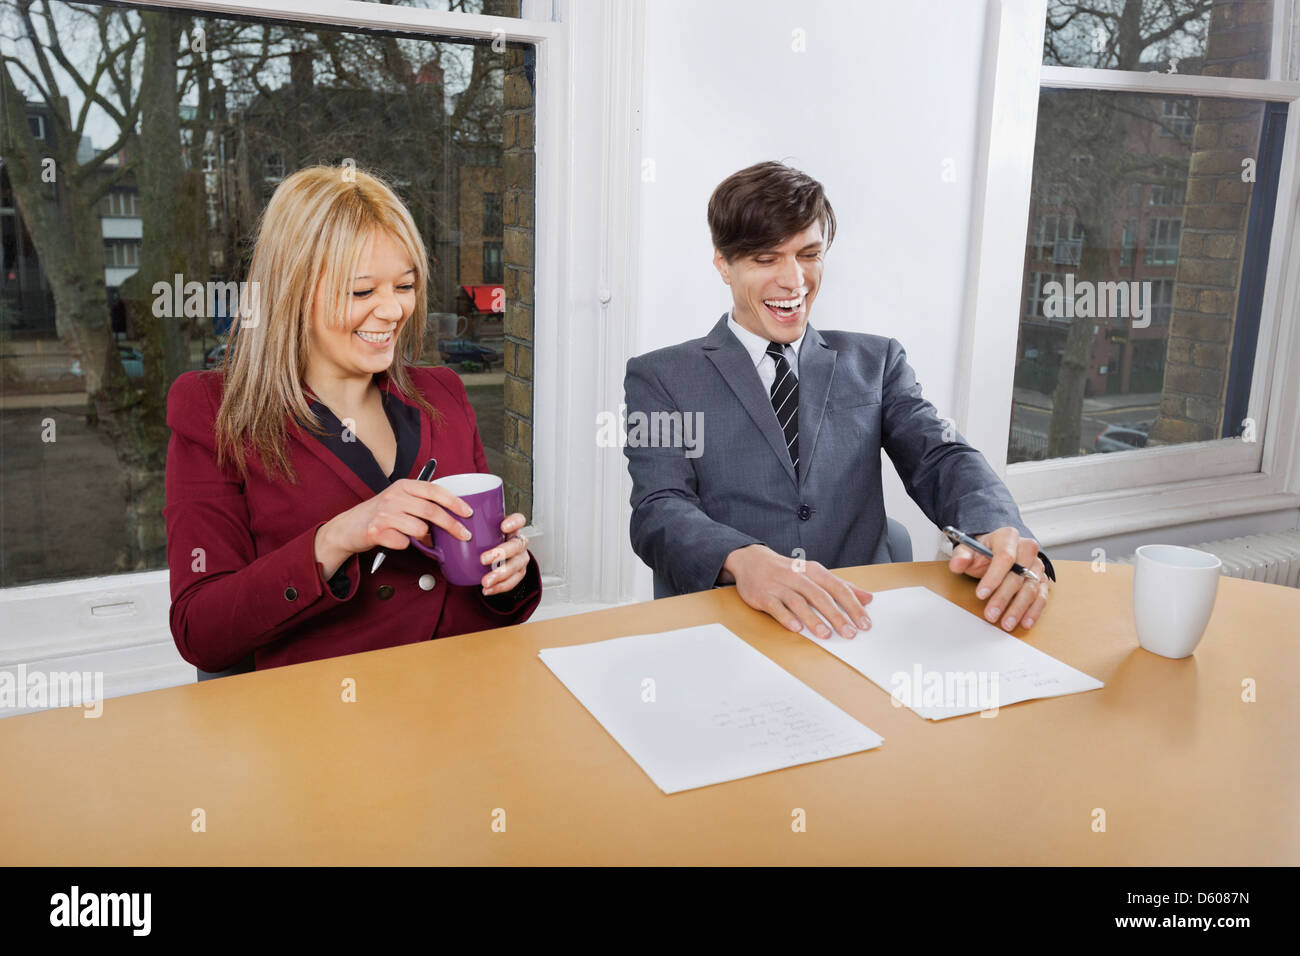 Cheerful young businesspeople with coffee mugs documents t conference table - Stock Image